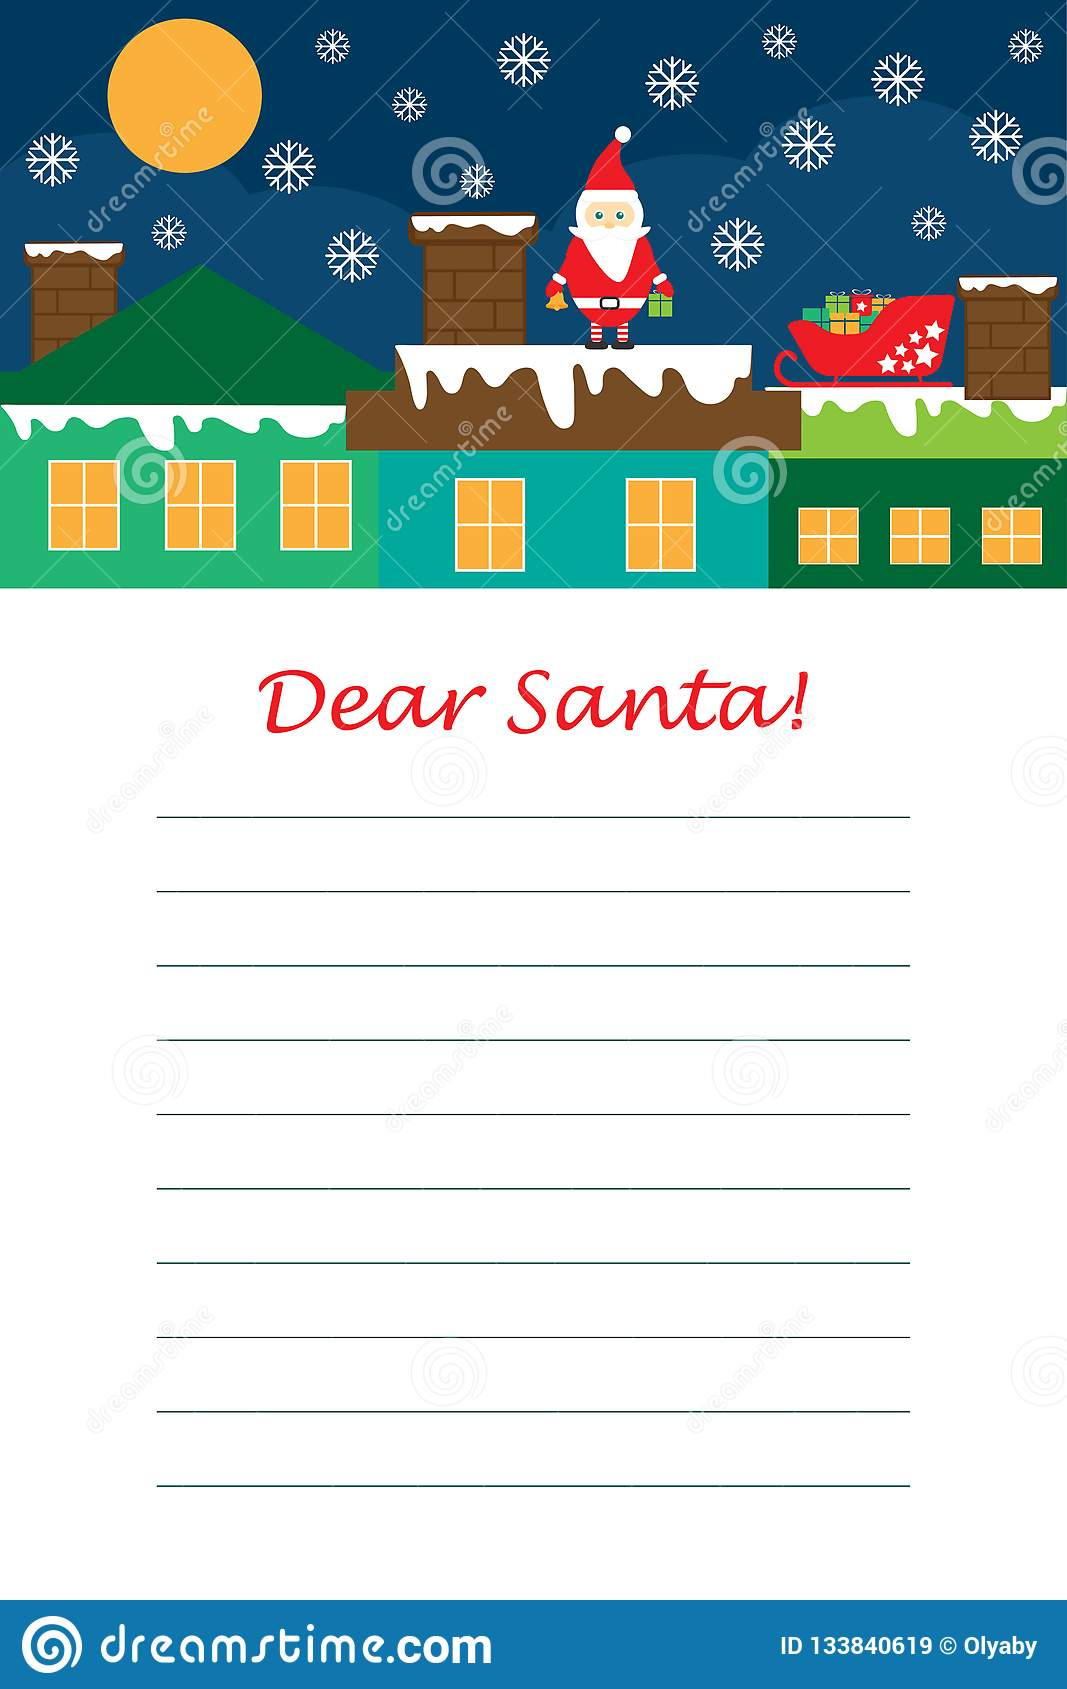 Christmas Letter To Santa Claus For Children Template